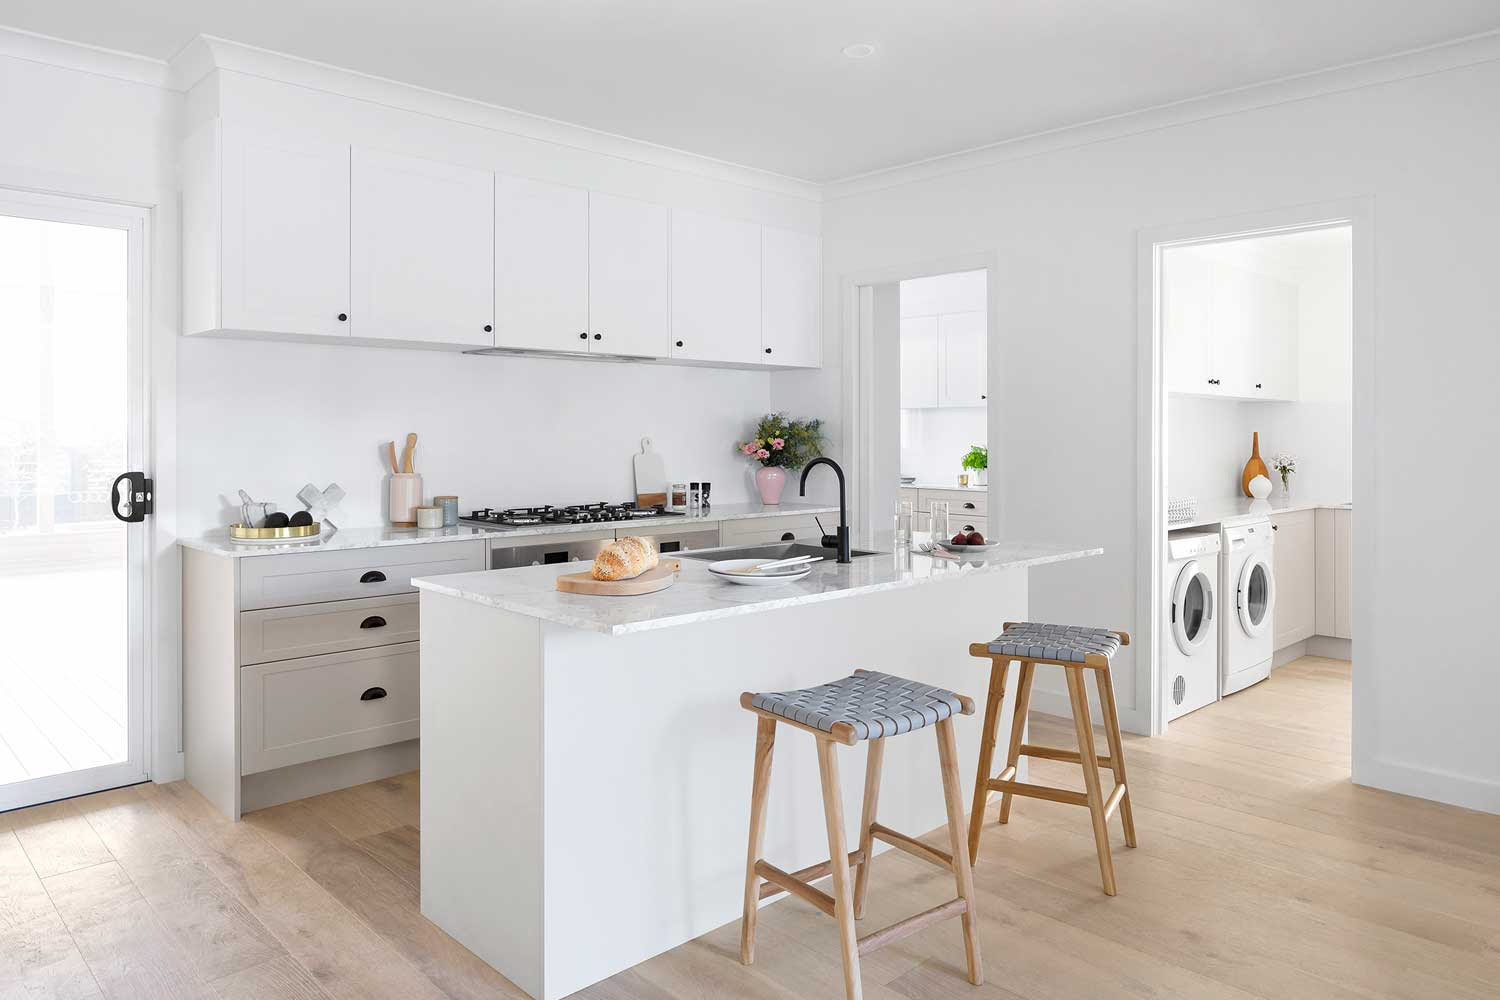 5 things no one knows about installing their own kitchen ...